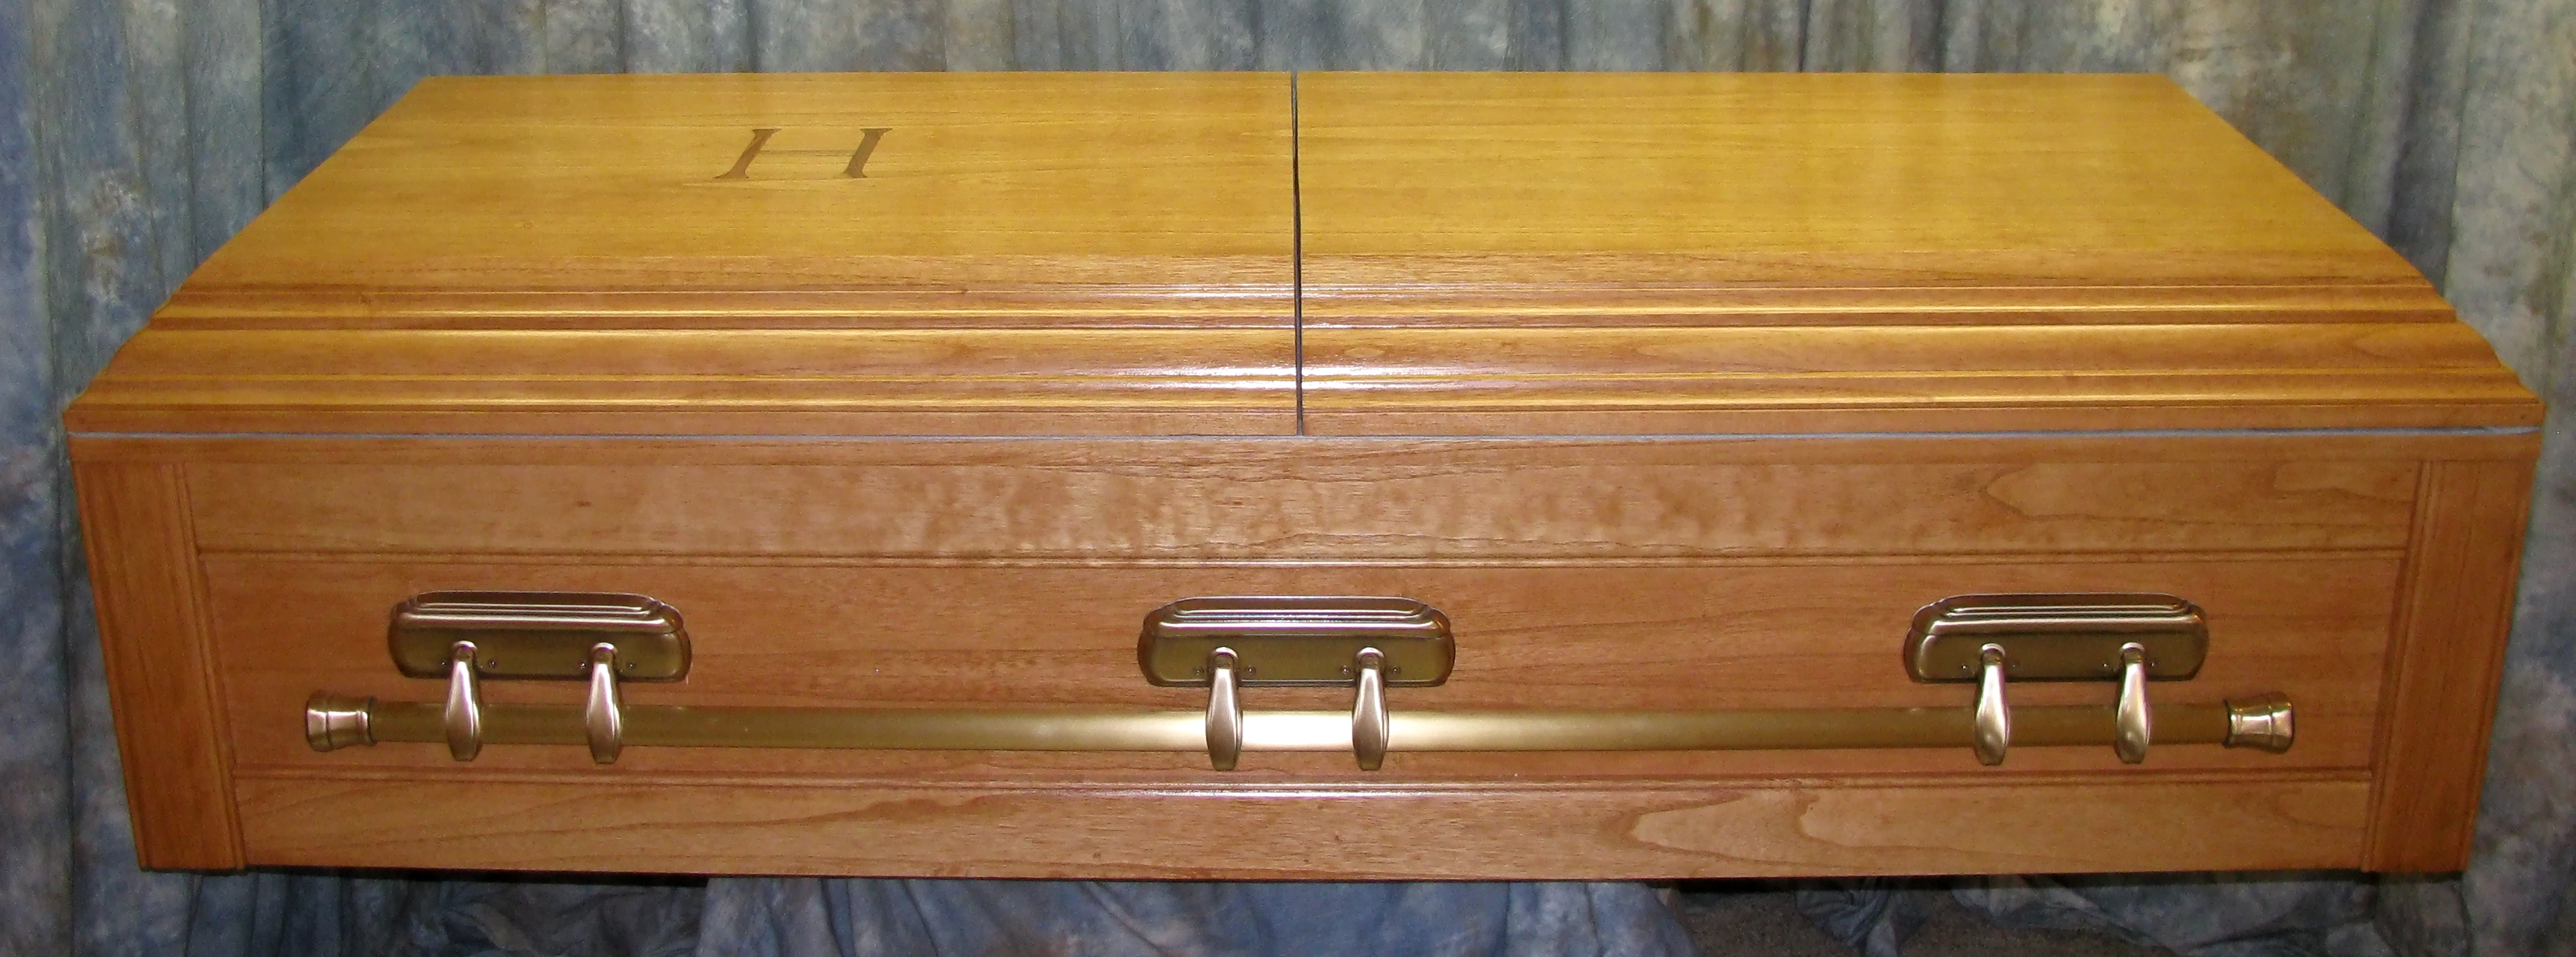 custom oversized casket made out of paulownia wood